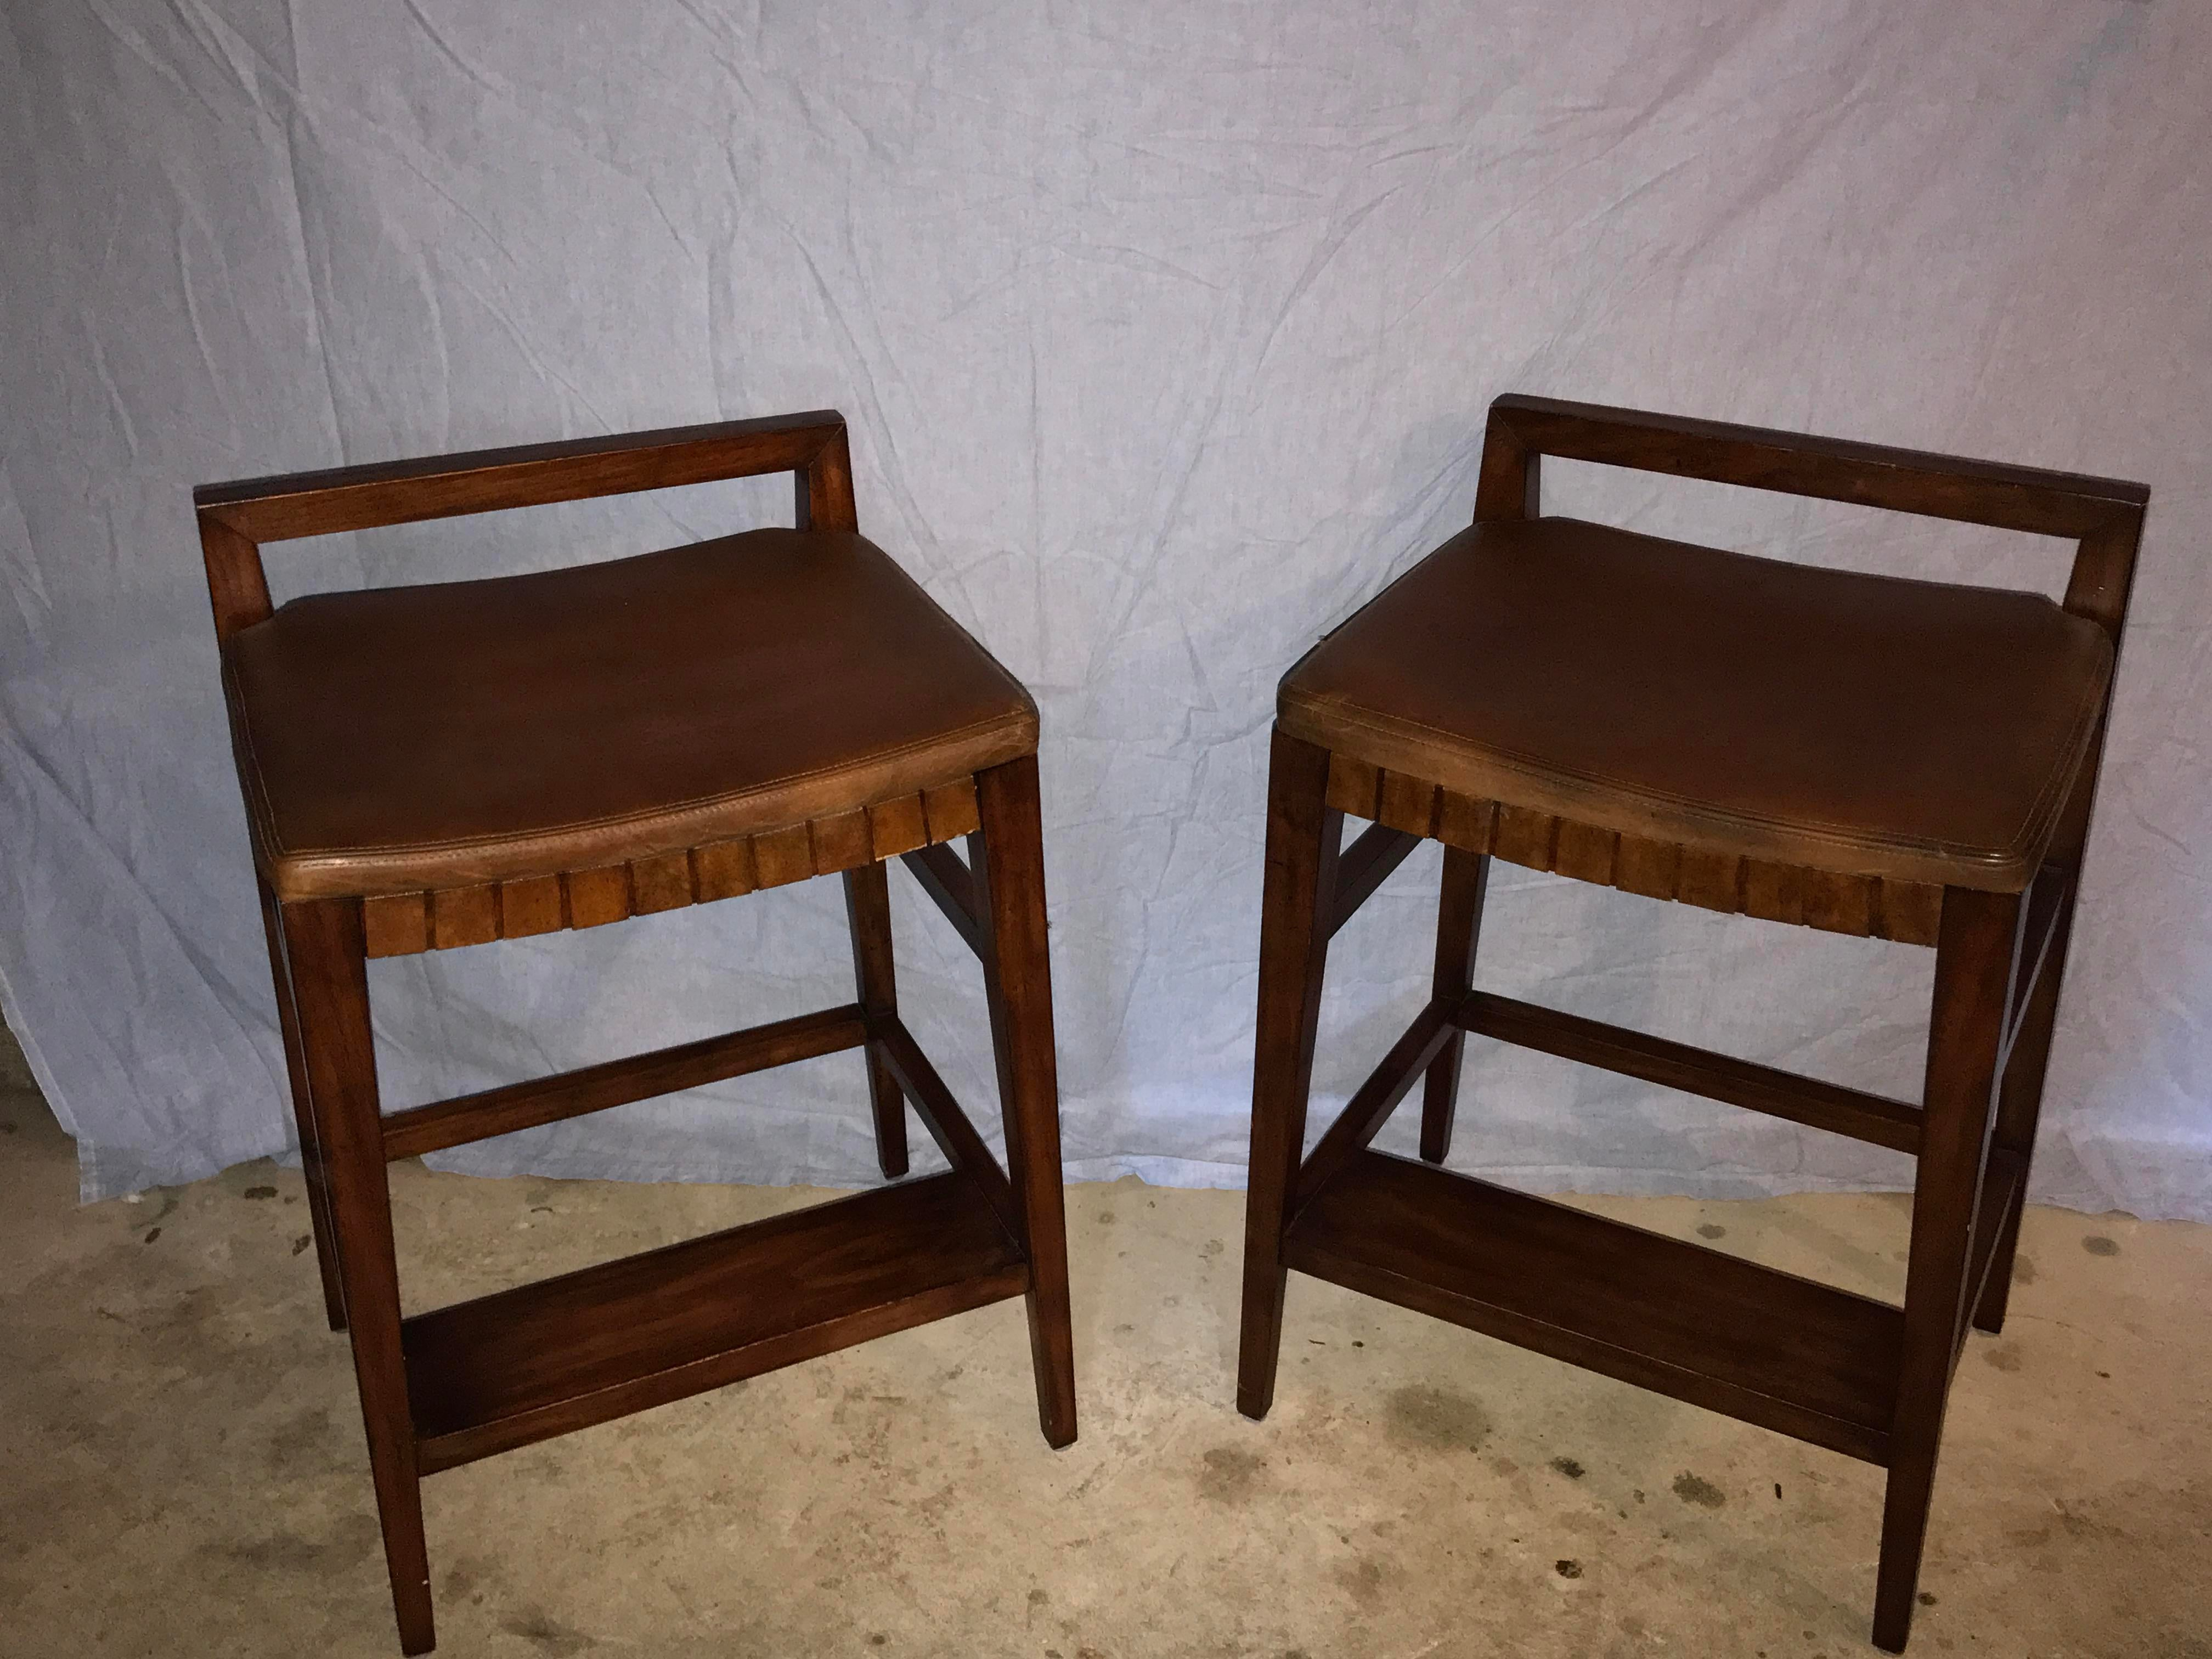 Henredon Mission Cherry Wood and Leather Bar Stools - A Pair - Image 2 of 11  sc 1 st  Chairish & Henredon Mission Cherry Wood and Leather Bar Stools - A Pair ... islam-shia.org